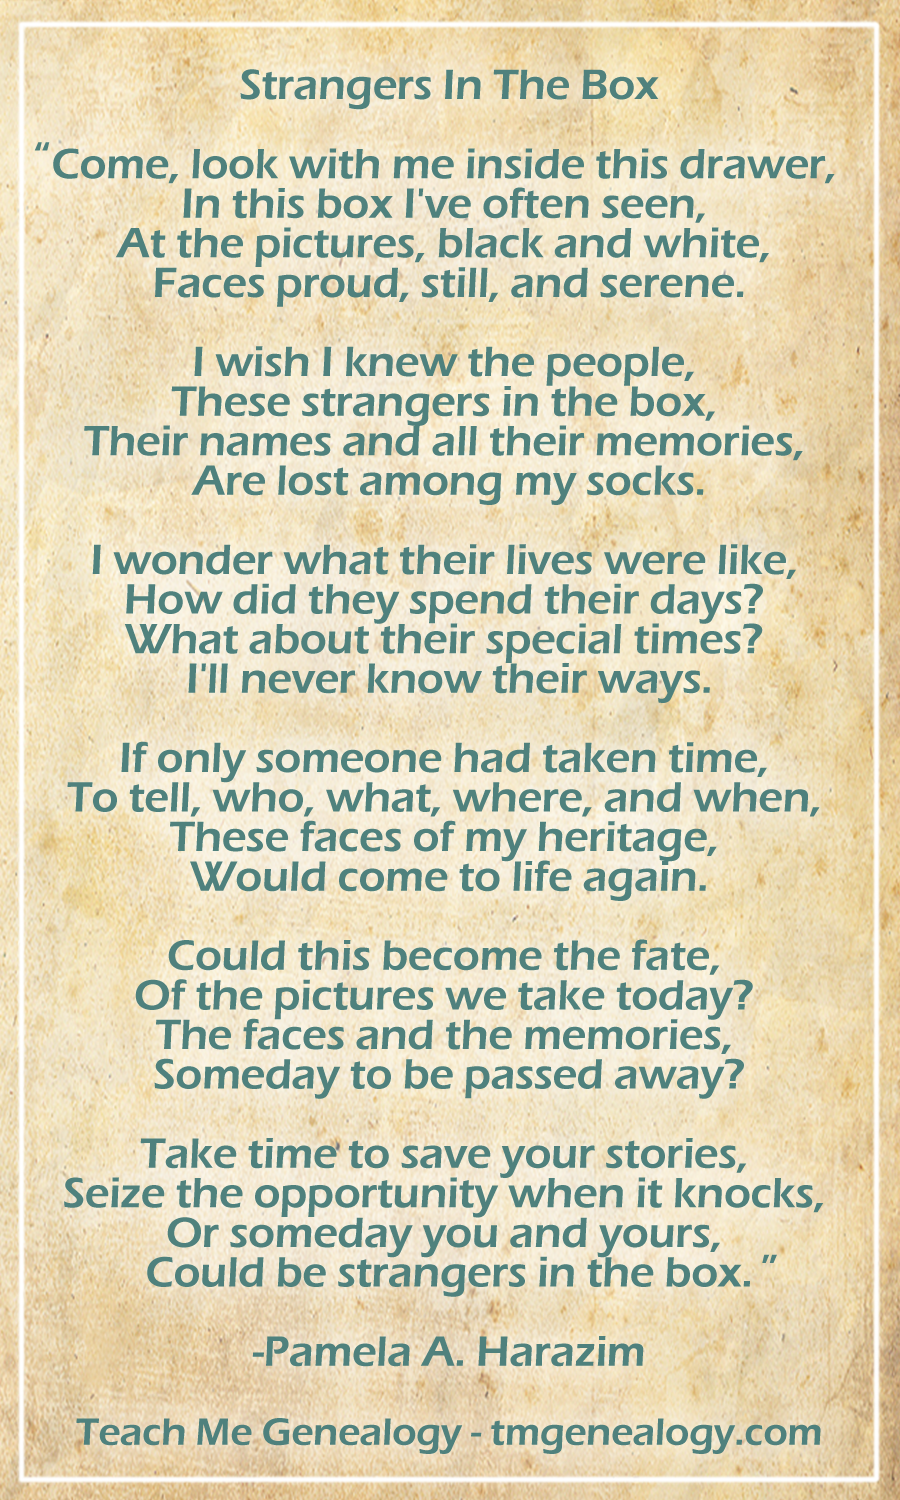 Strangers In The Box - By: Pamela A. Harazim ~ Teach Me Genealogy